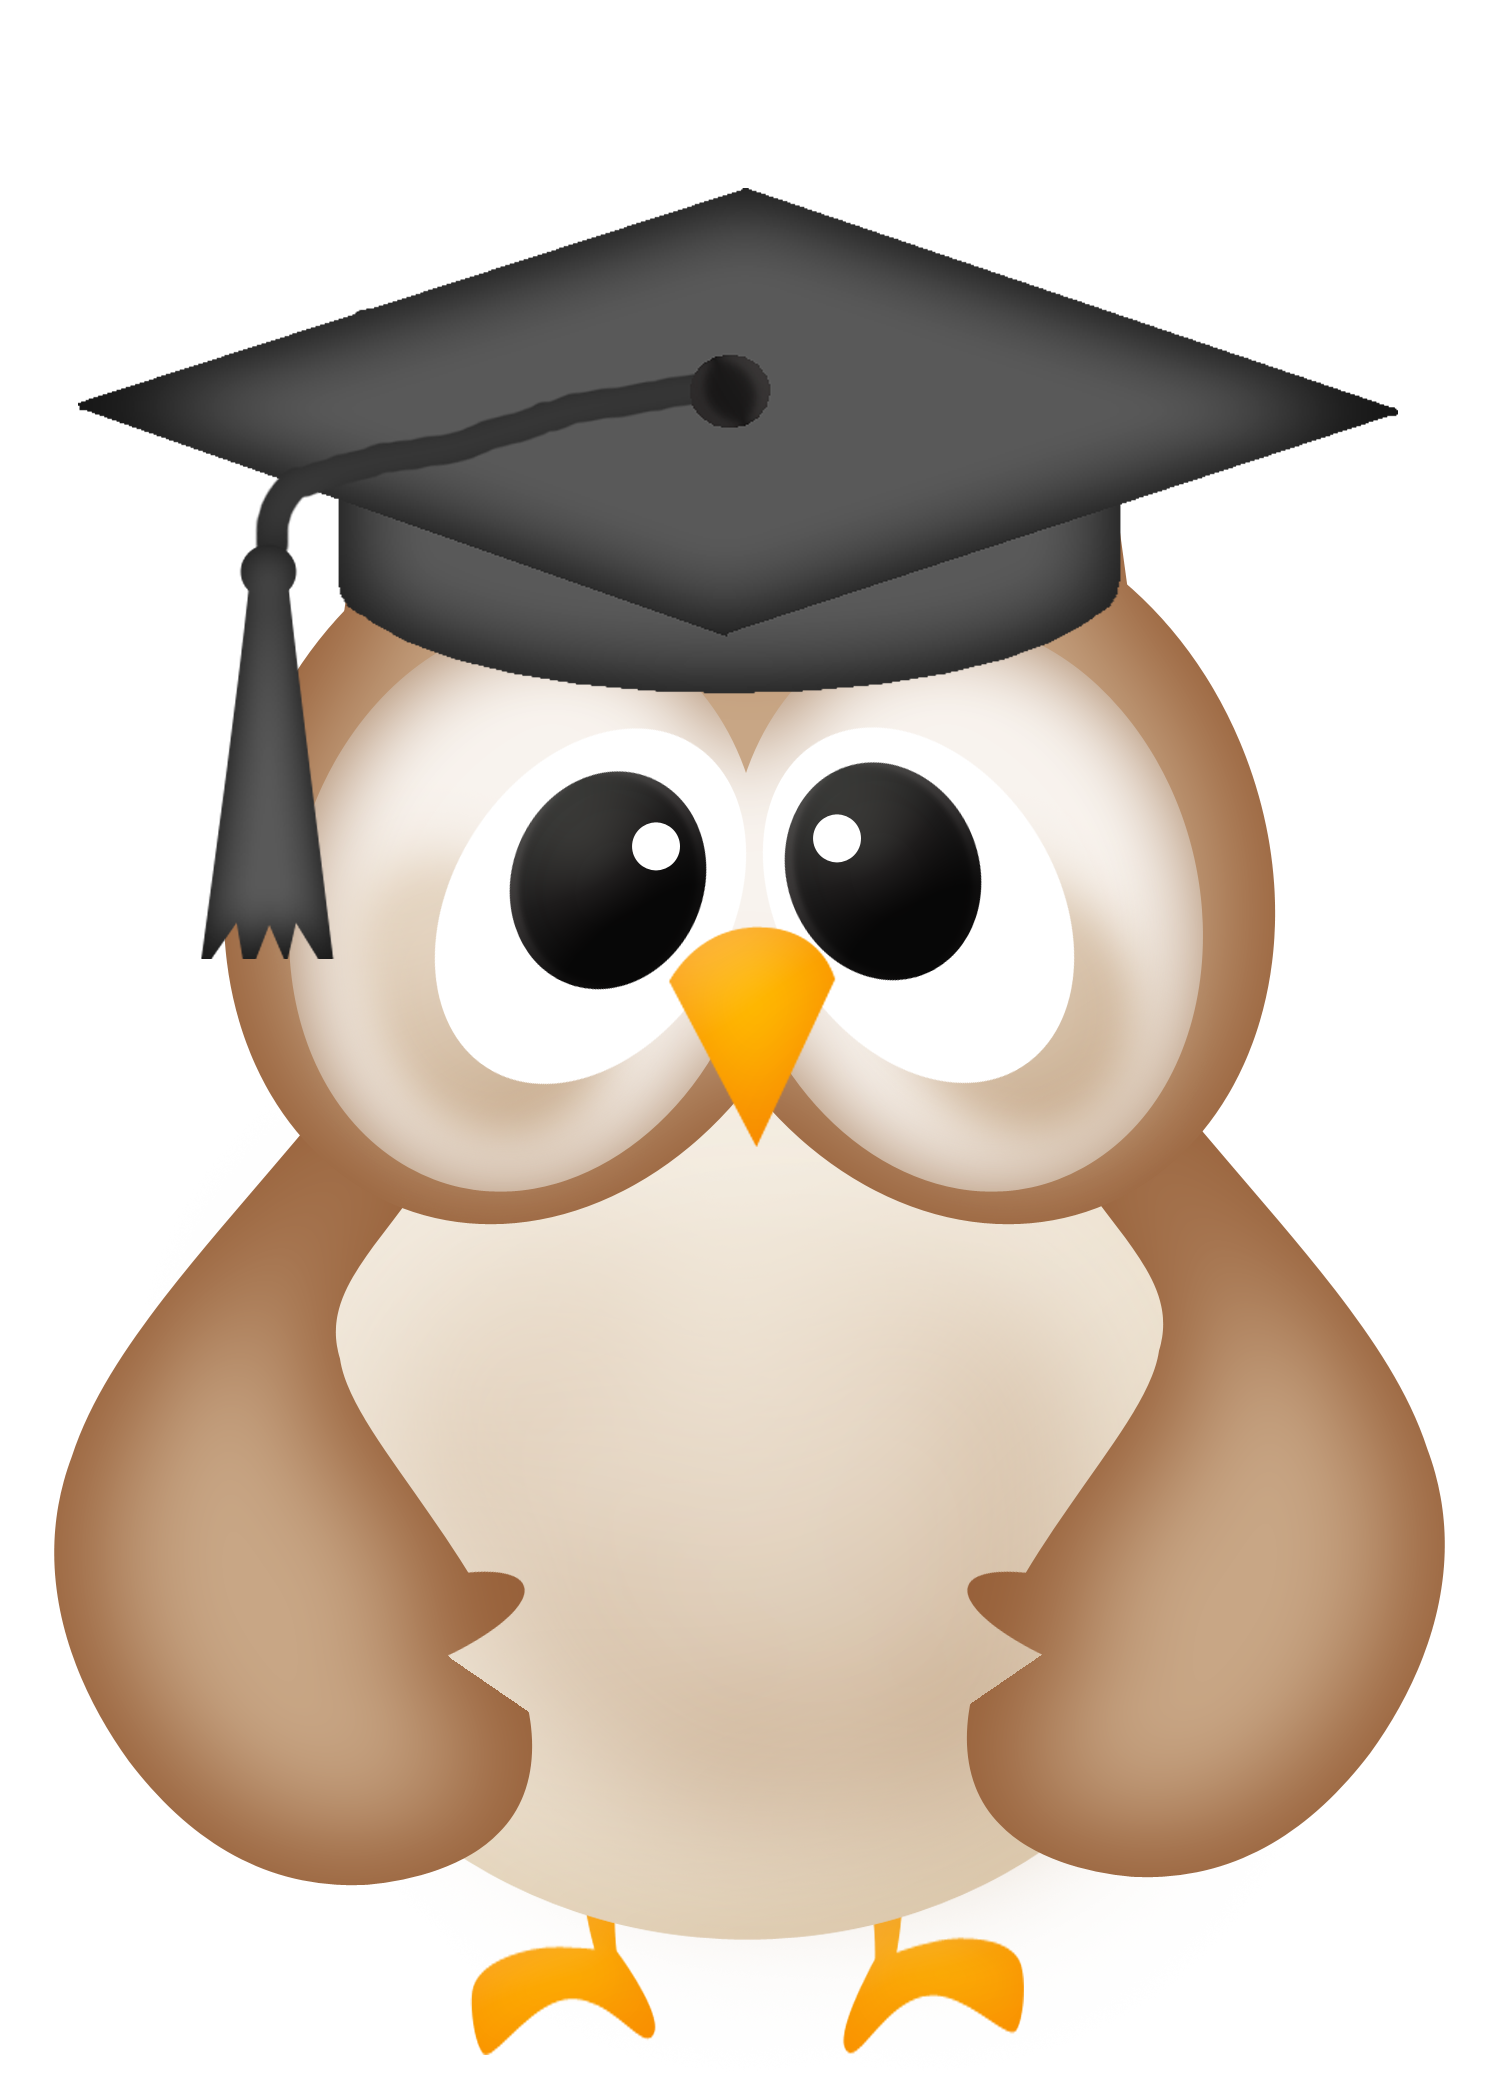 Graduate drawing owl. Graduation clipart panda free